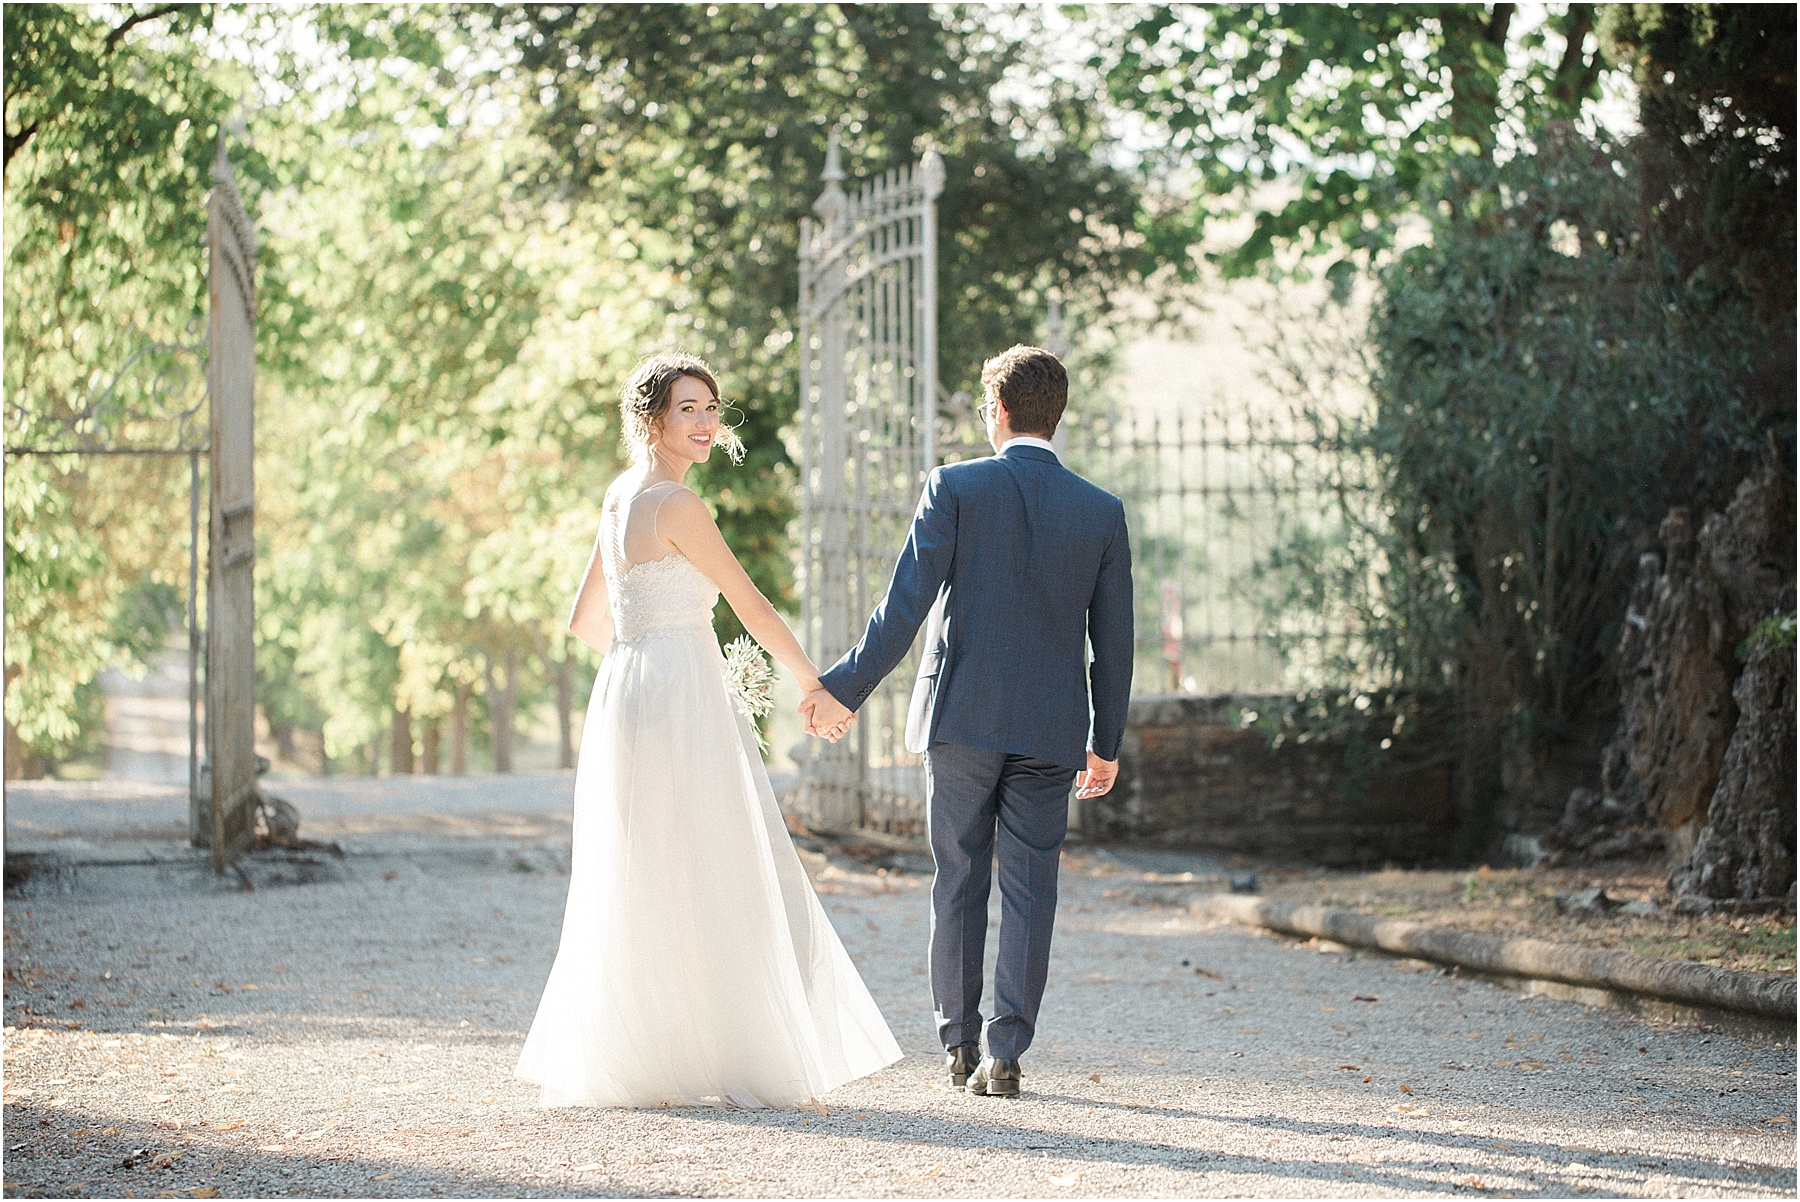 tuscan sunset sunlight golden hour bride and group with peugeot in cortona tuscany italy film destination wedding photography